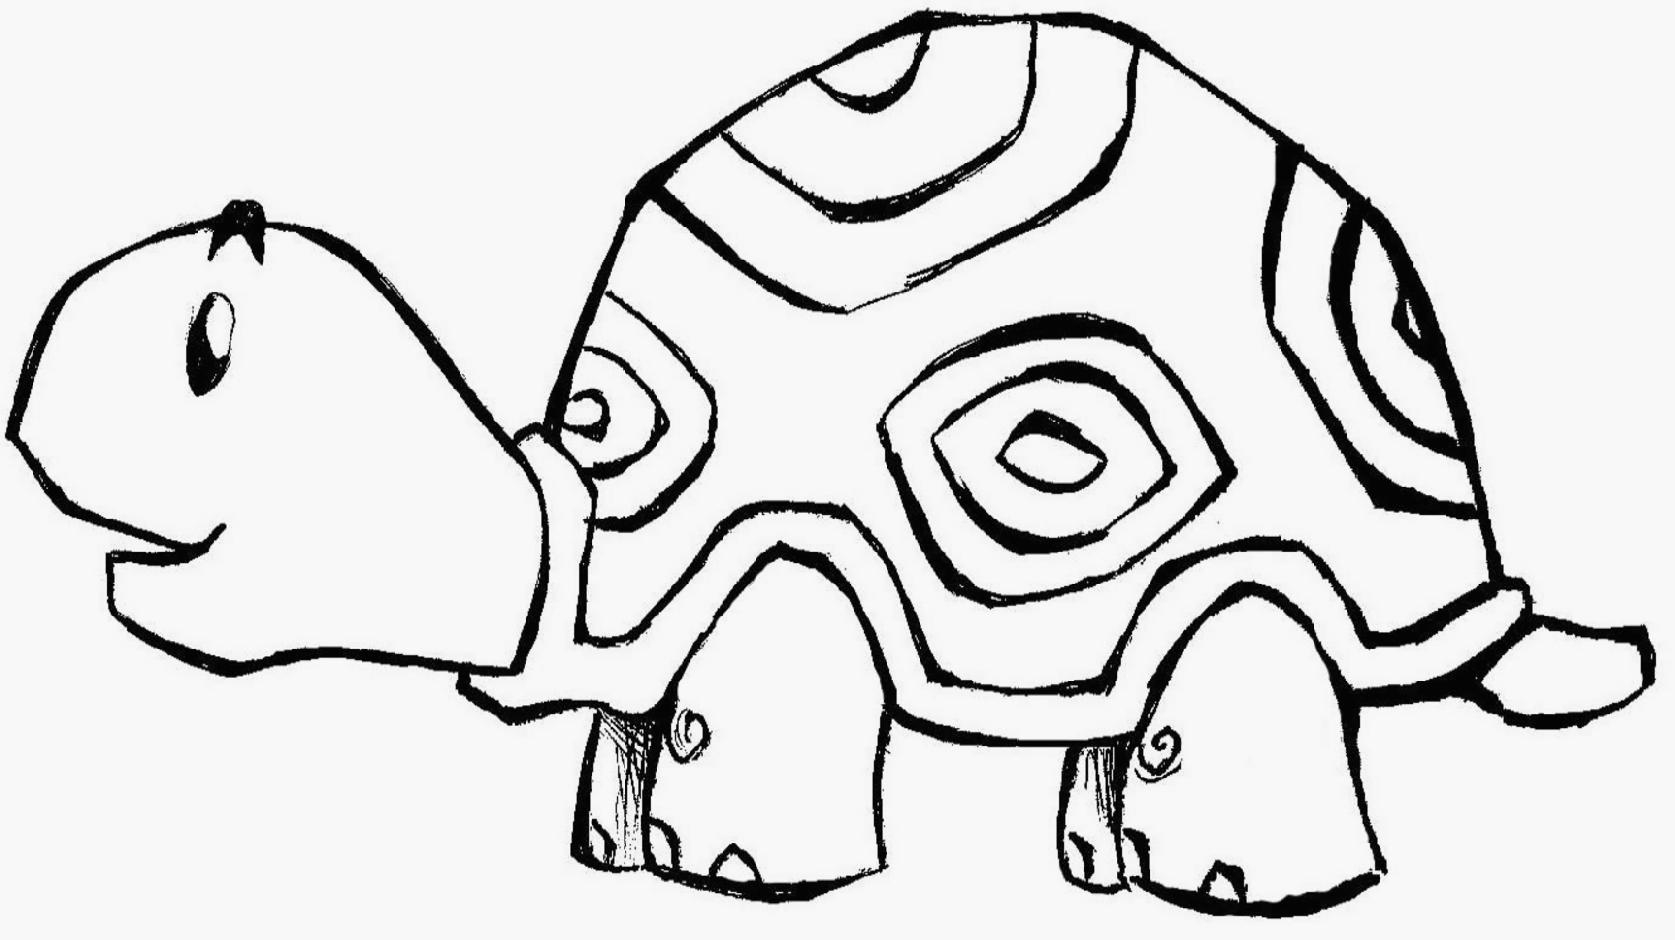 Coloring Pages : Art Coloring Pages Forschoolers Center 8Cgbjqbki - Free Printable Color Sheets For Preschool